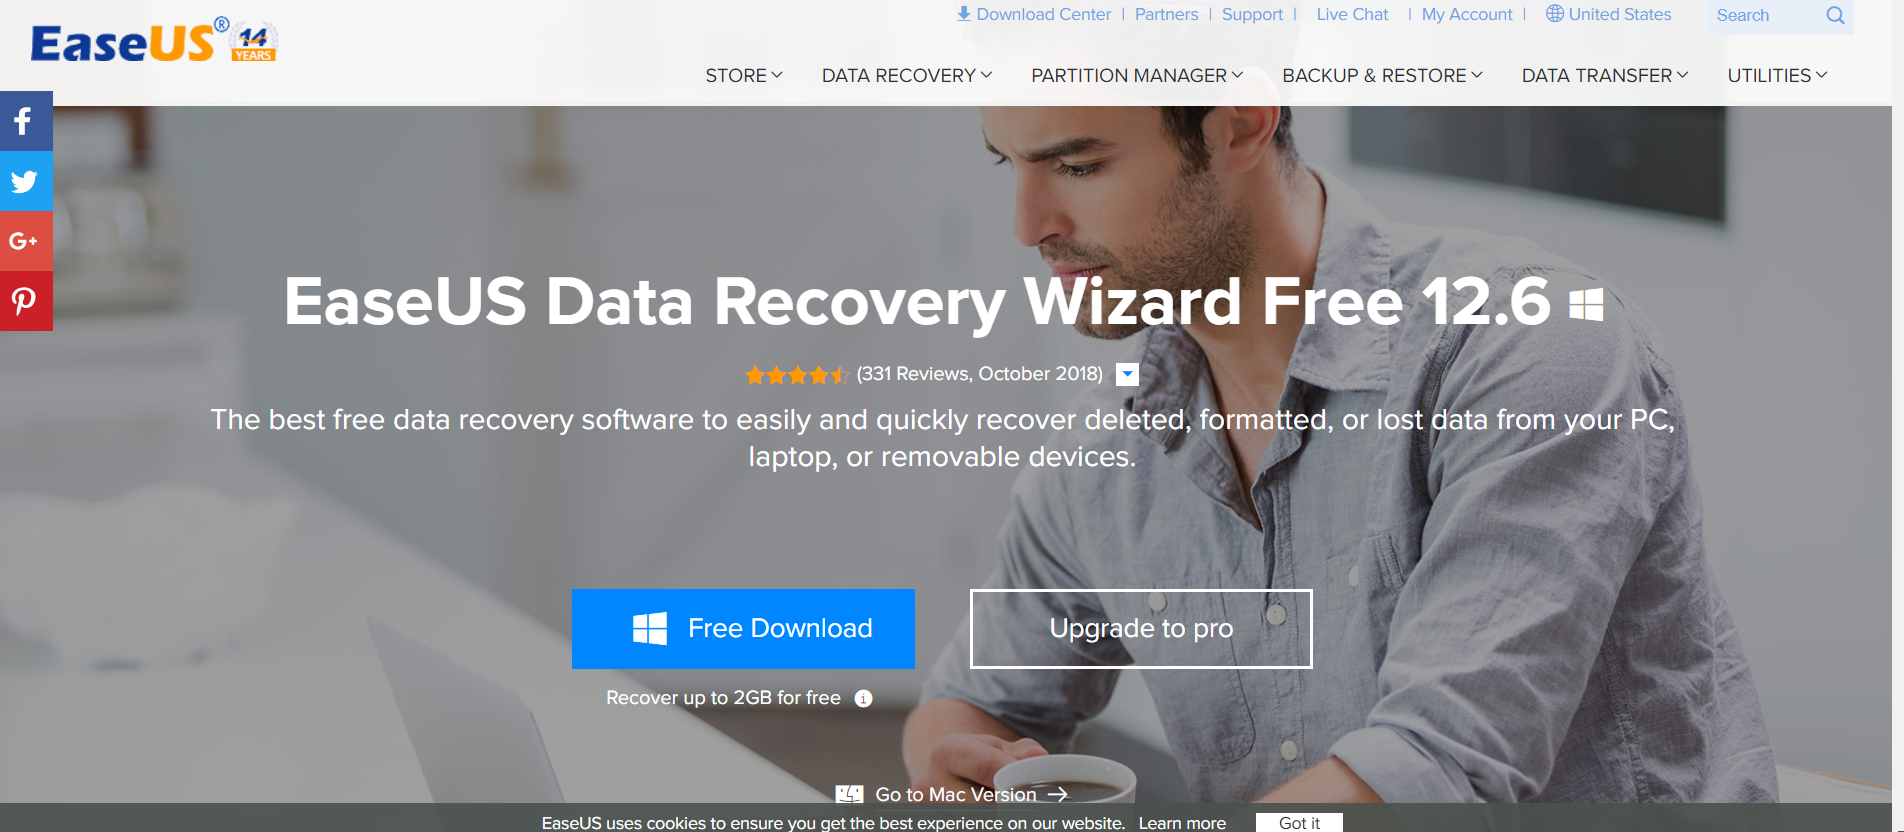 St Free Download Recover Lost — ZwiftItaly